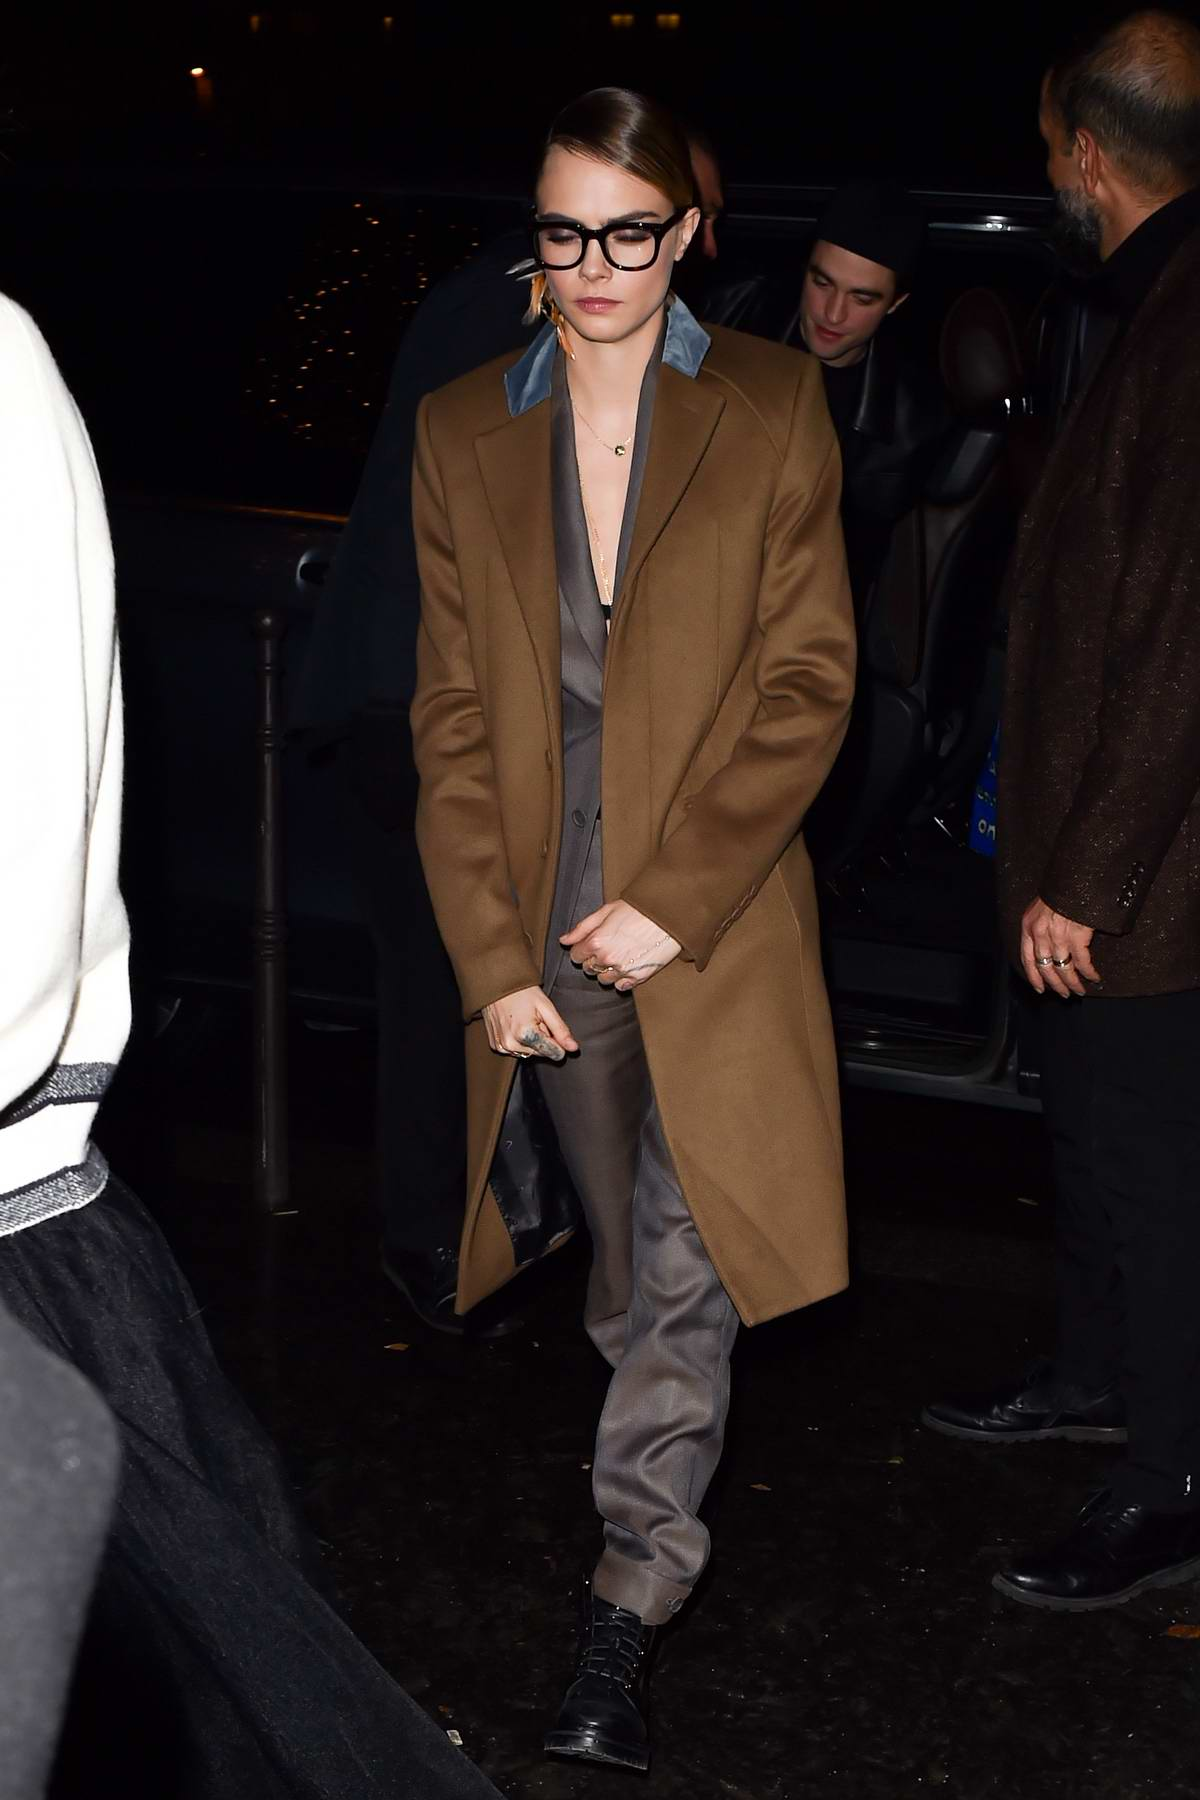 Cara Delevingne and Robert Pattinson seen arriving at Cavier Kaspier restaurant in Paris, France